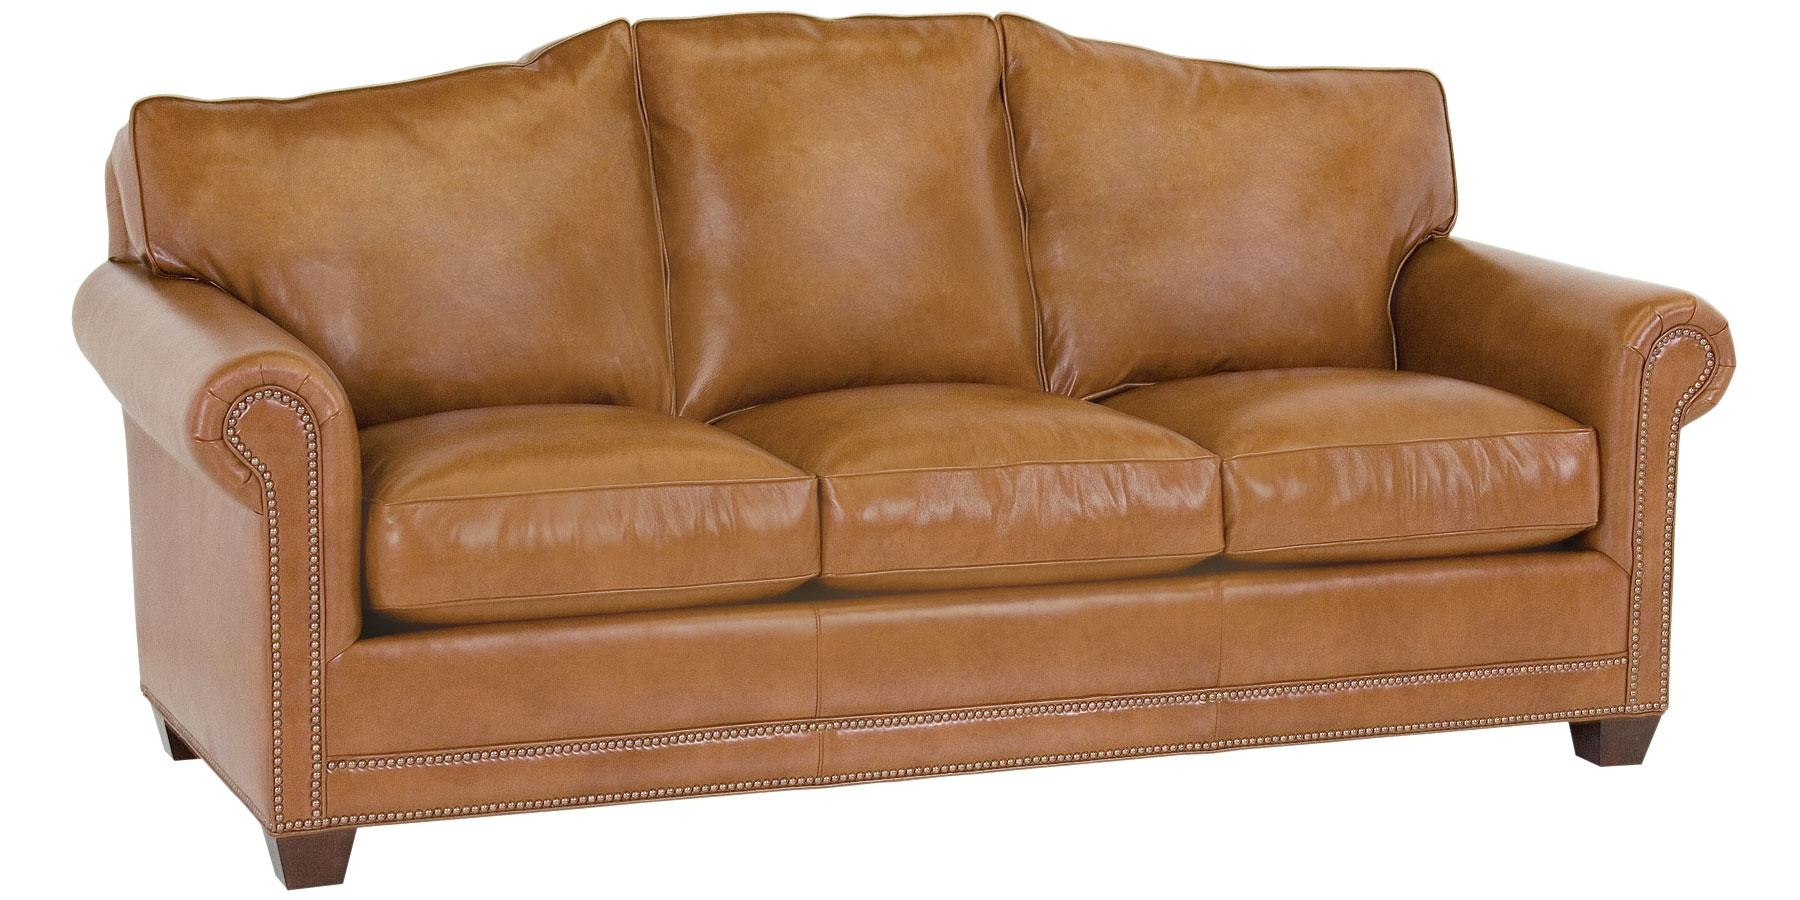 leather nailhead sofa set sectional bed with ottoman 20 43 choices of brown sofas trim